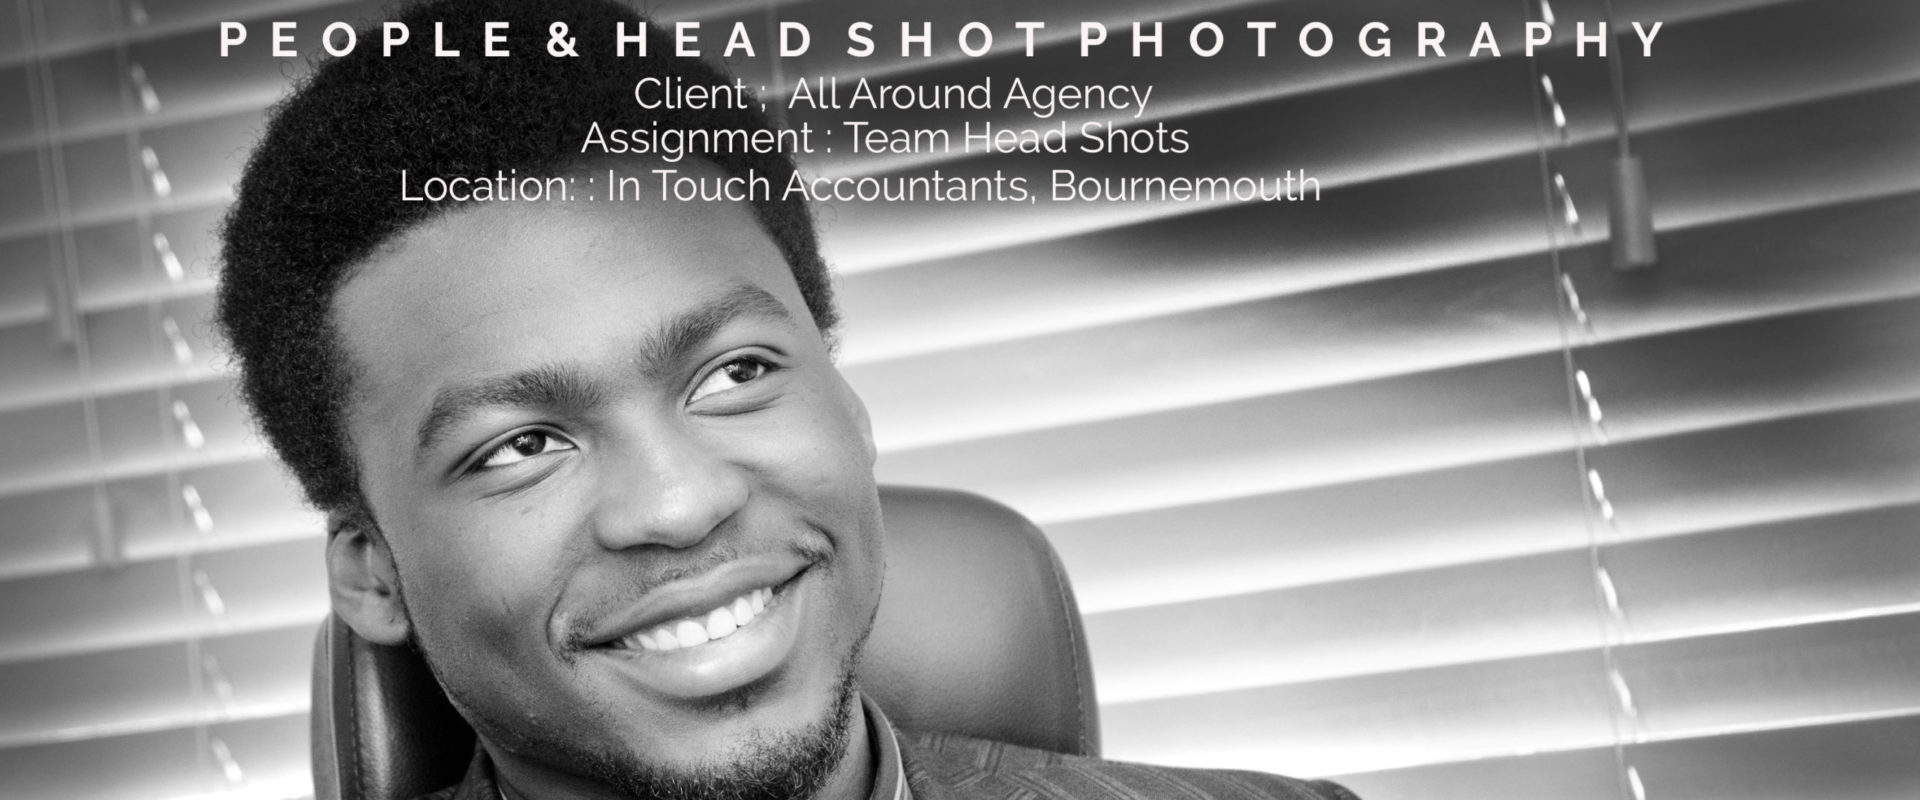 SILVER CLOUD PHOTOGRAPHY_BERKSHIRE_HEAD SHOT & PEOPLE PHOTOGRAPHERS_IN TOUCH ACCOUNTING_BOURNEMOUTH (2)